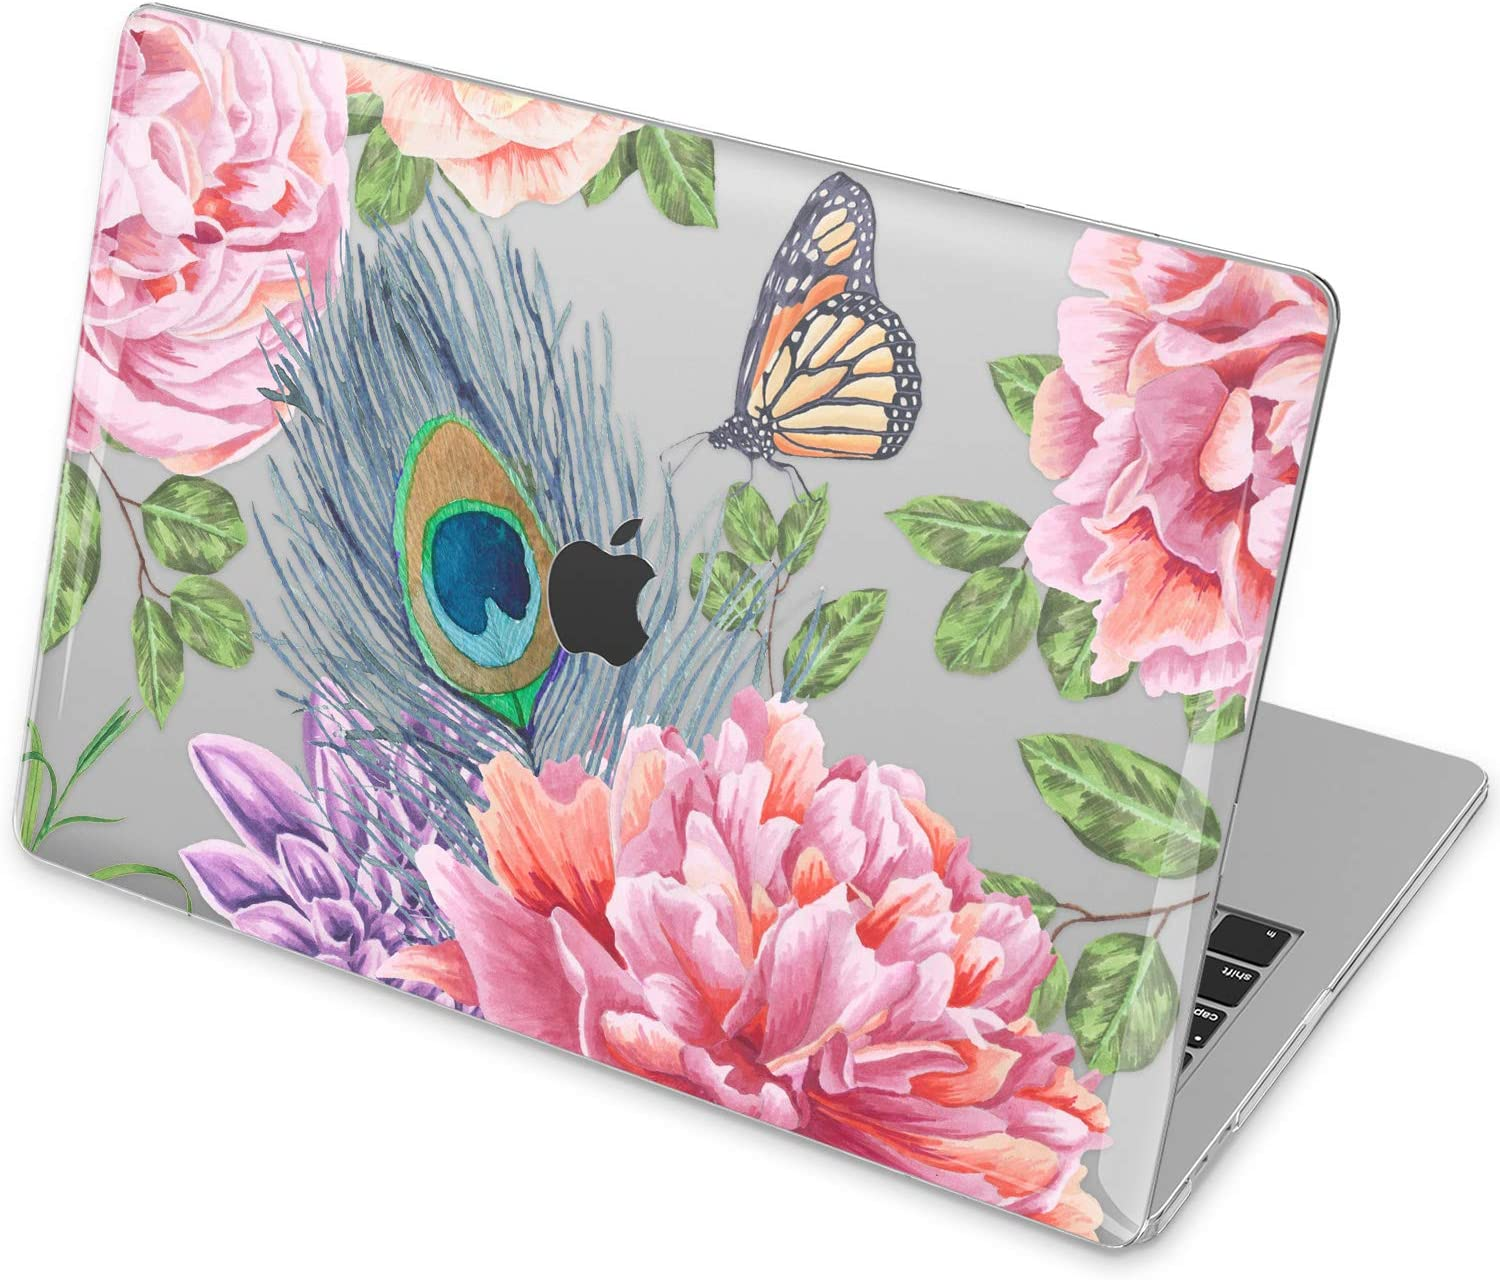 Vonna Hard Case Replacement for Apple MacBook Pro 16 2019 Pro 13 2020 Retina 15 Air 13 Mac Air 11 Mac 12 Design Luxury Vintage Print Feather Plastic Cover Roses Peacock Pink Flowers Touch Bar vm221